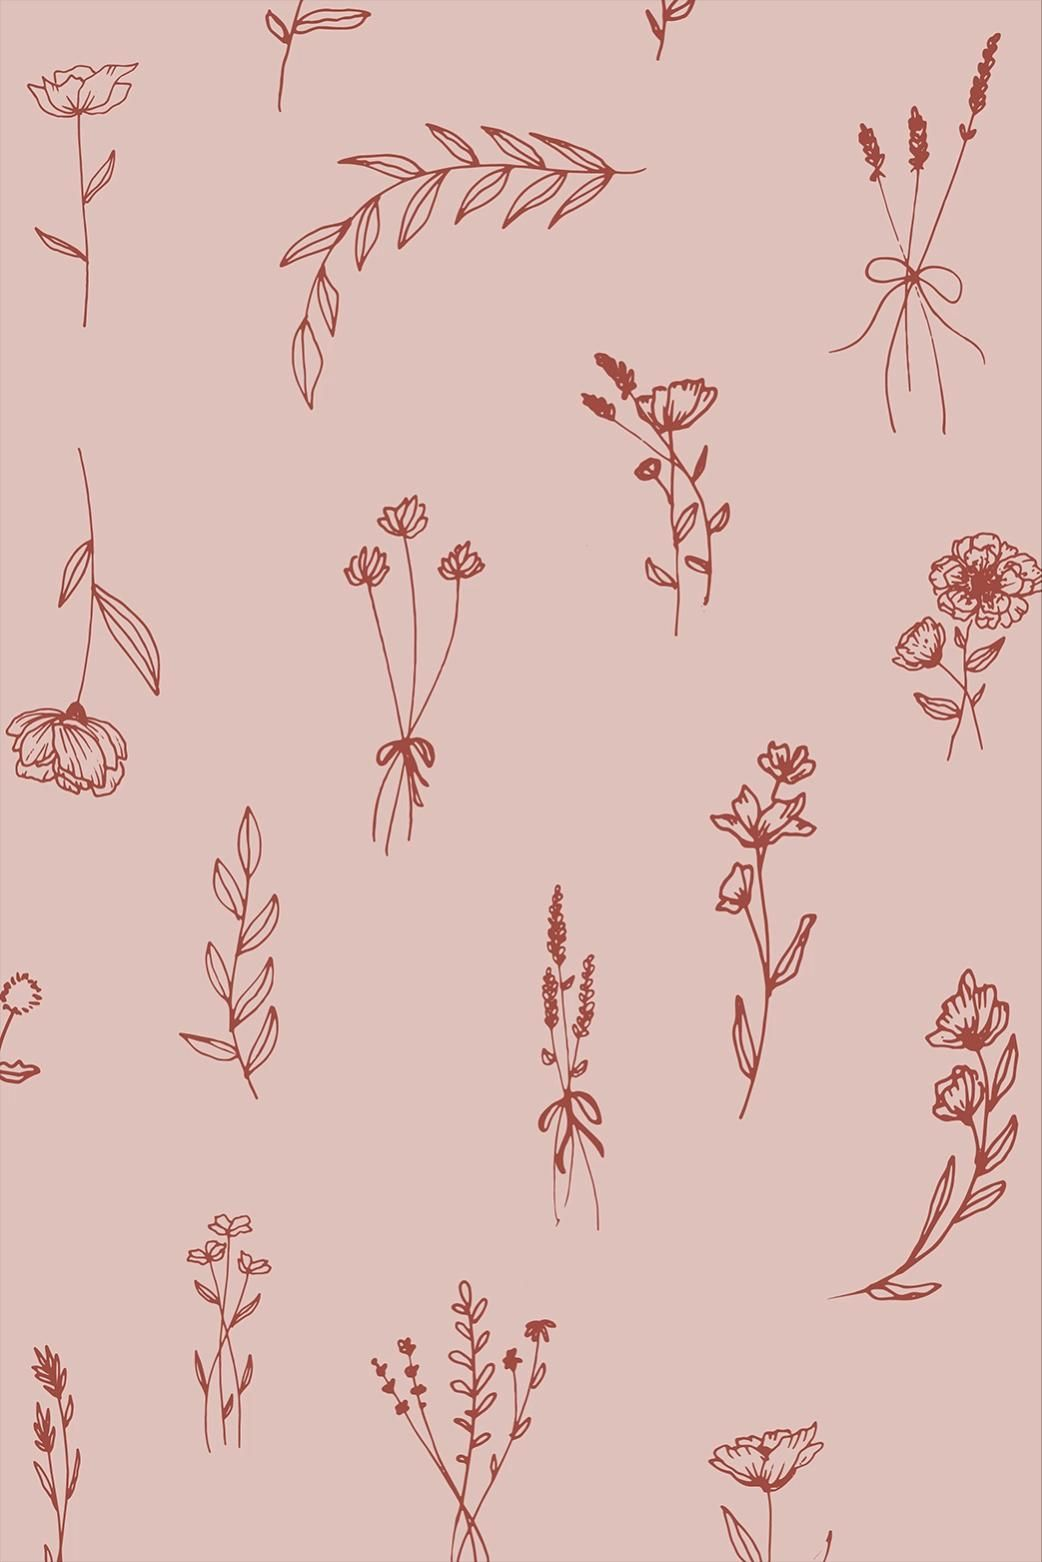 Modern Romantic | Minimal pink & red floral patter